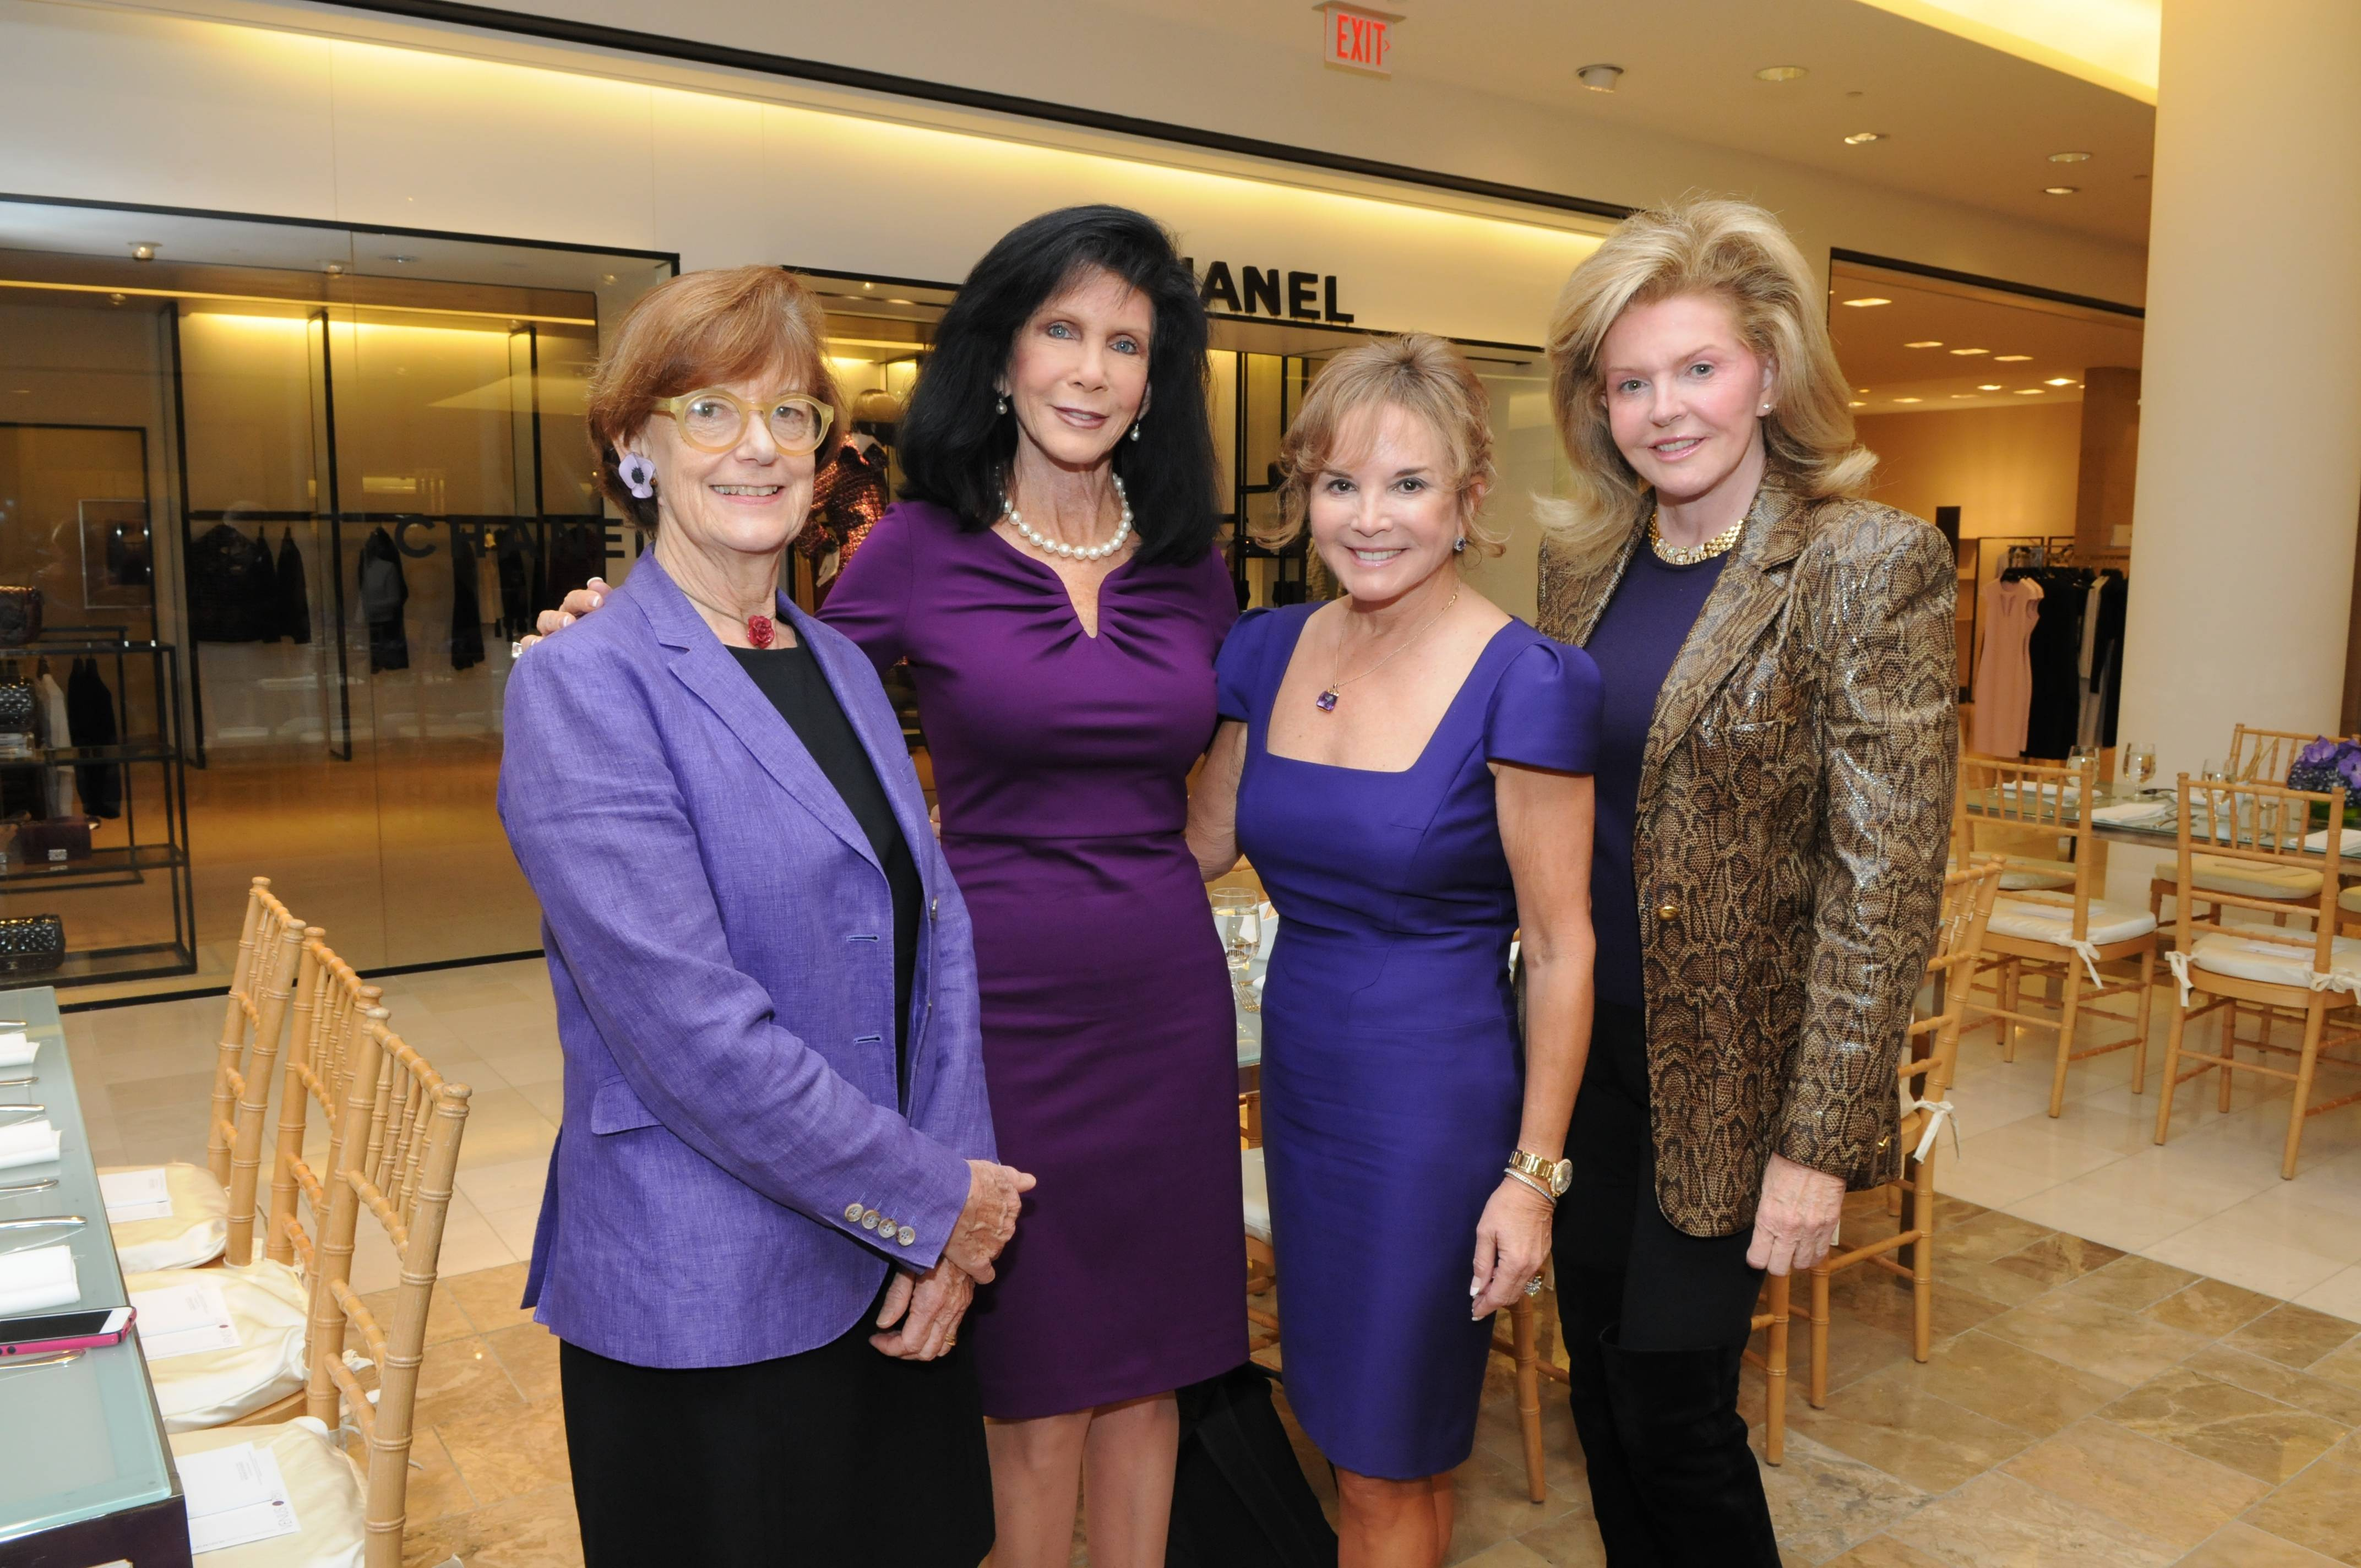 Gillian Thomas, Trish Bell, Swanee DiMare, and Brenda Nestor Castellano